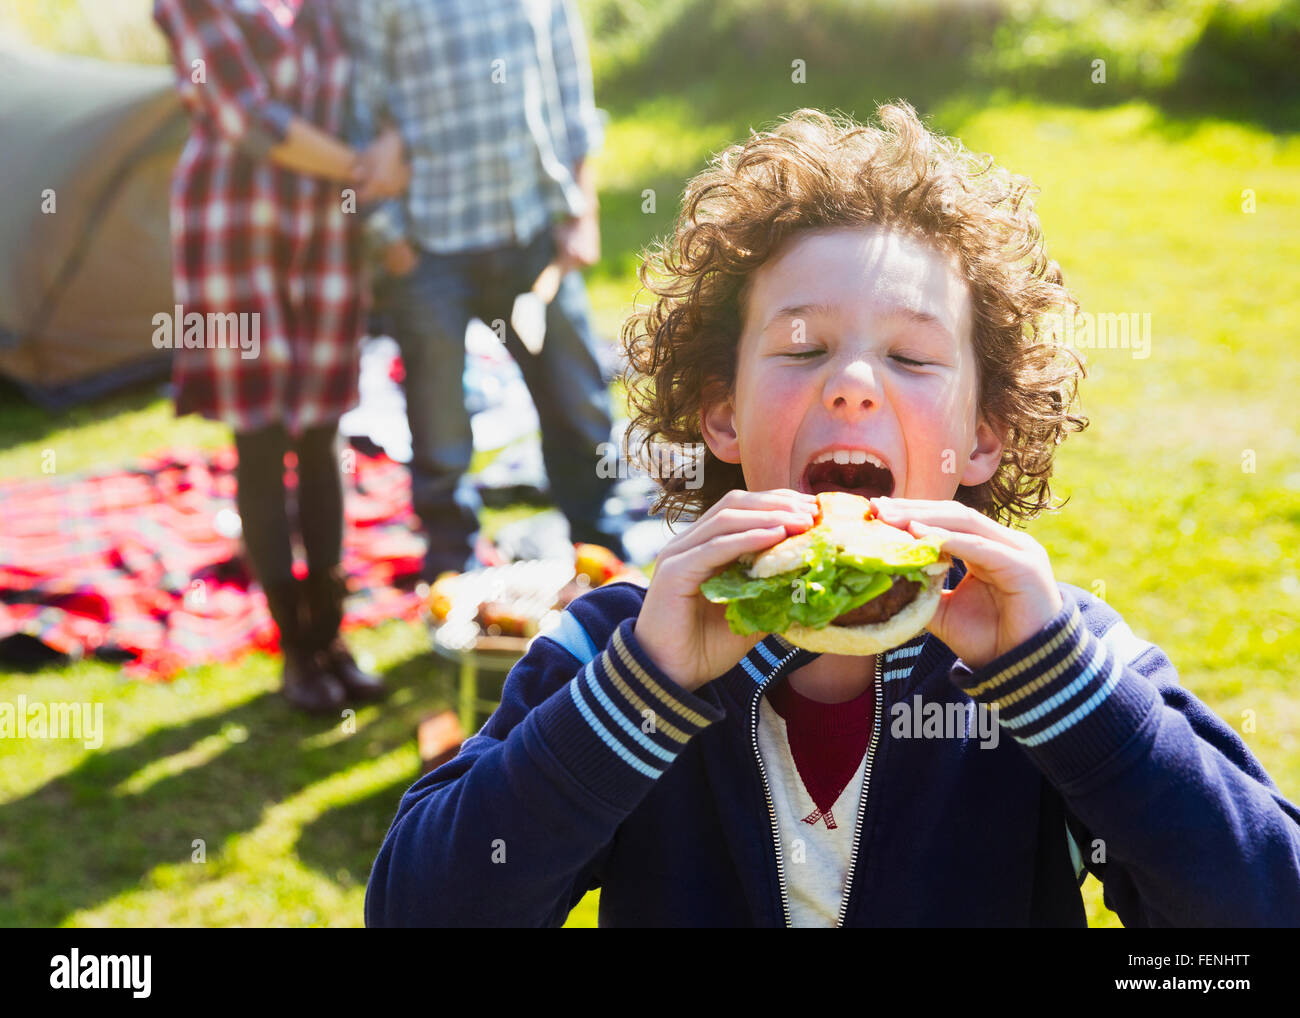 Enthusiastic boy taking large bite of hamburger at sunny campsite - Stock Image